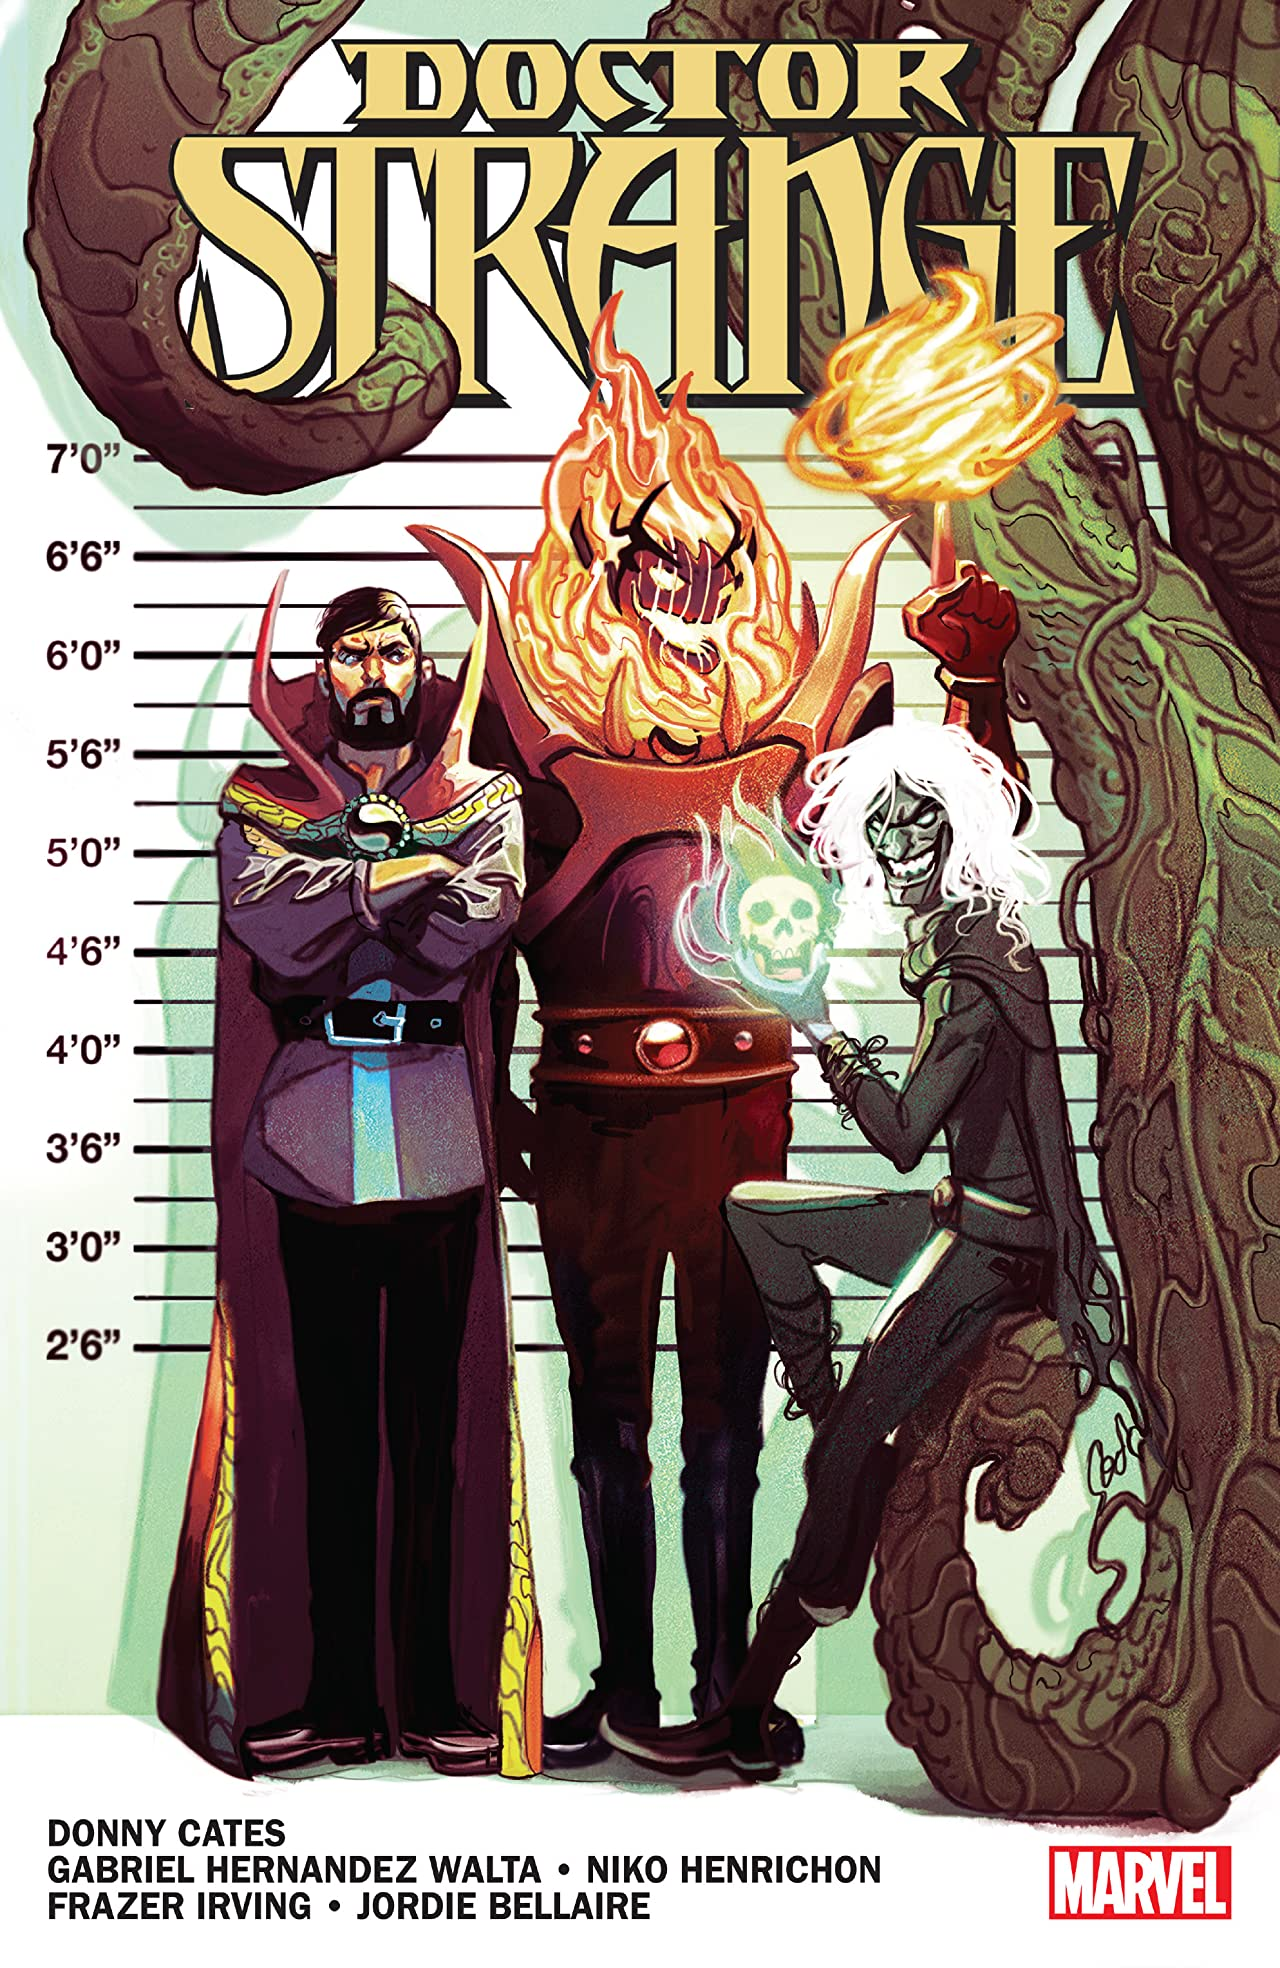 Doctor Strange by Donny Cates